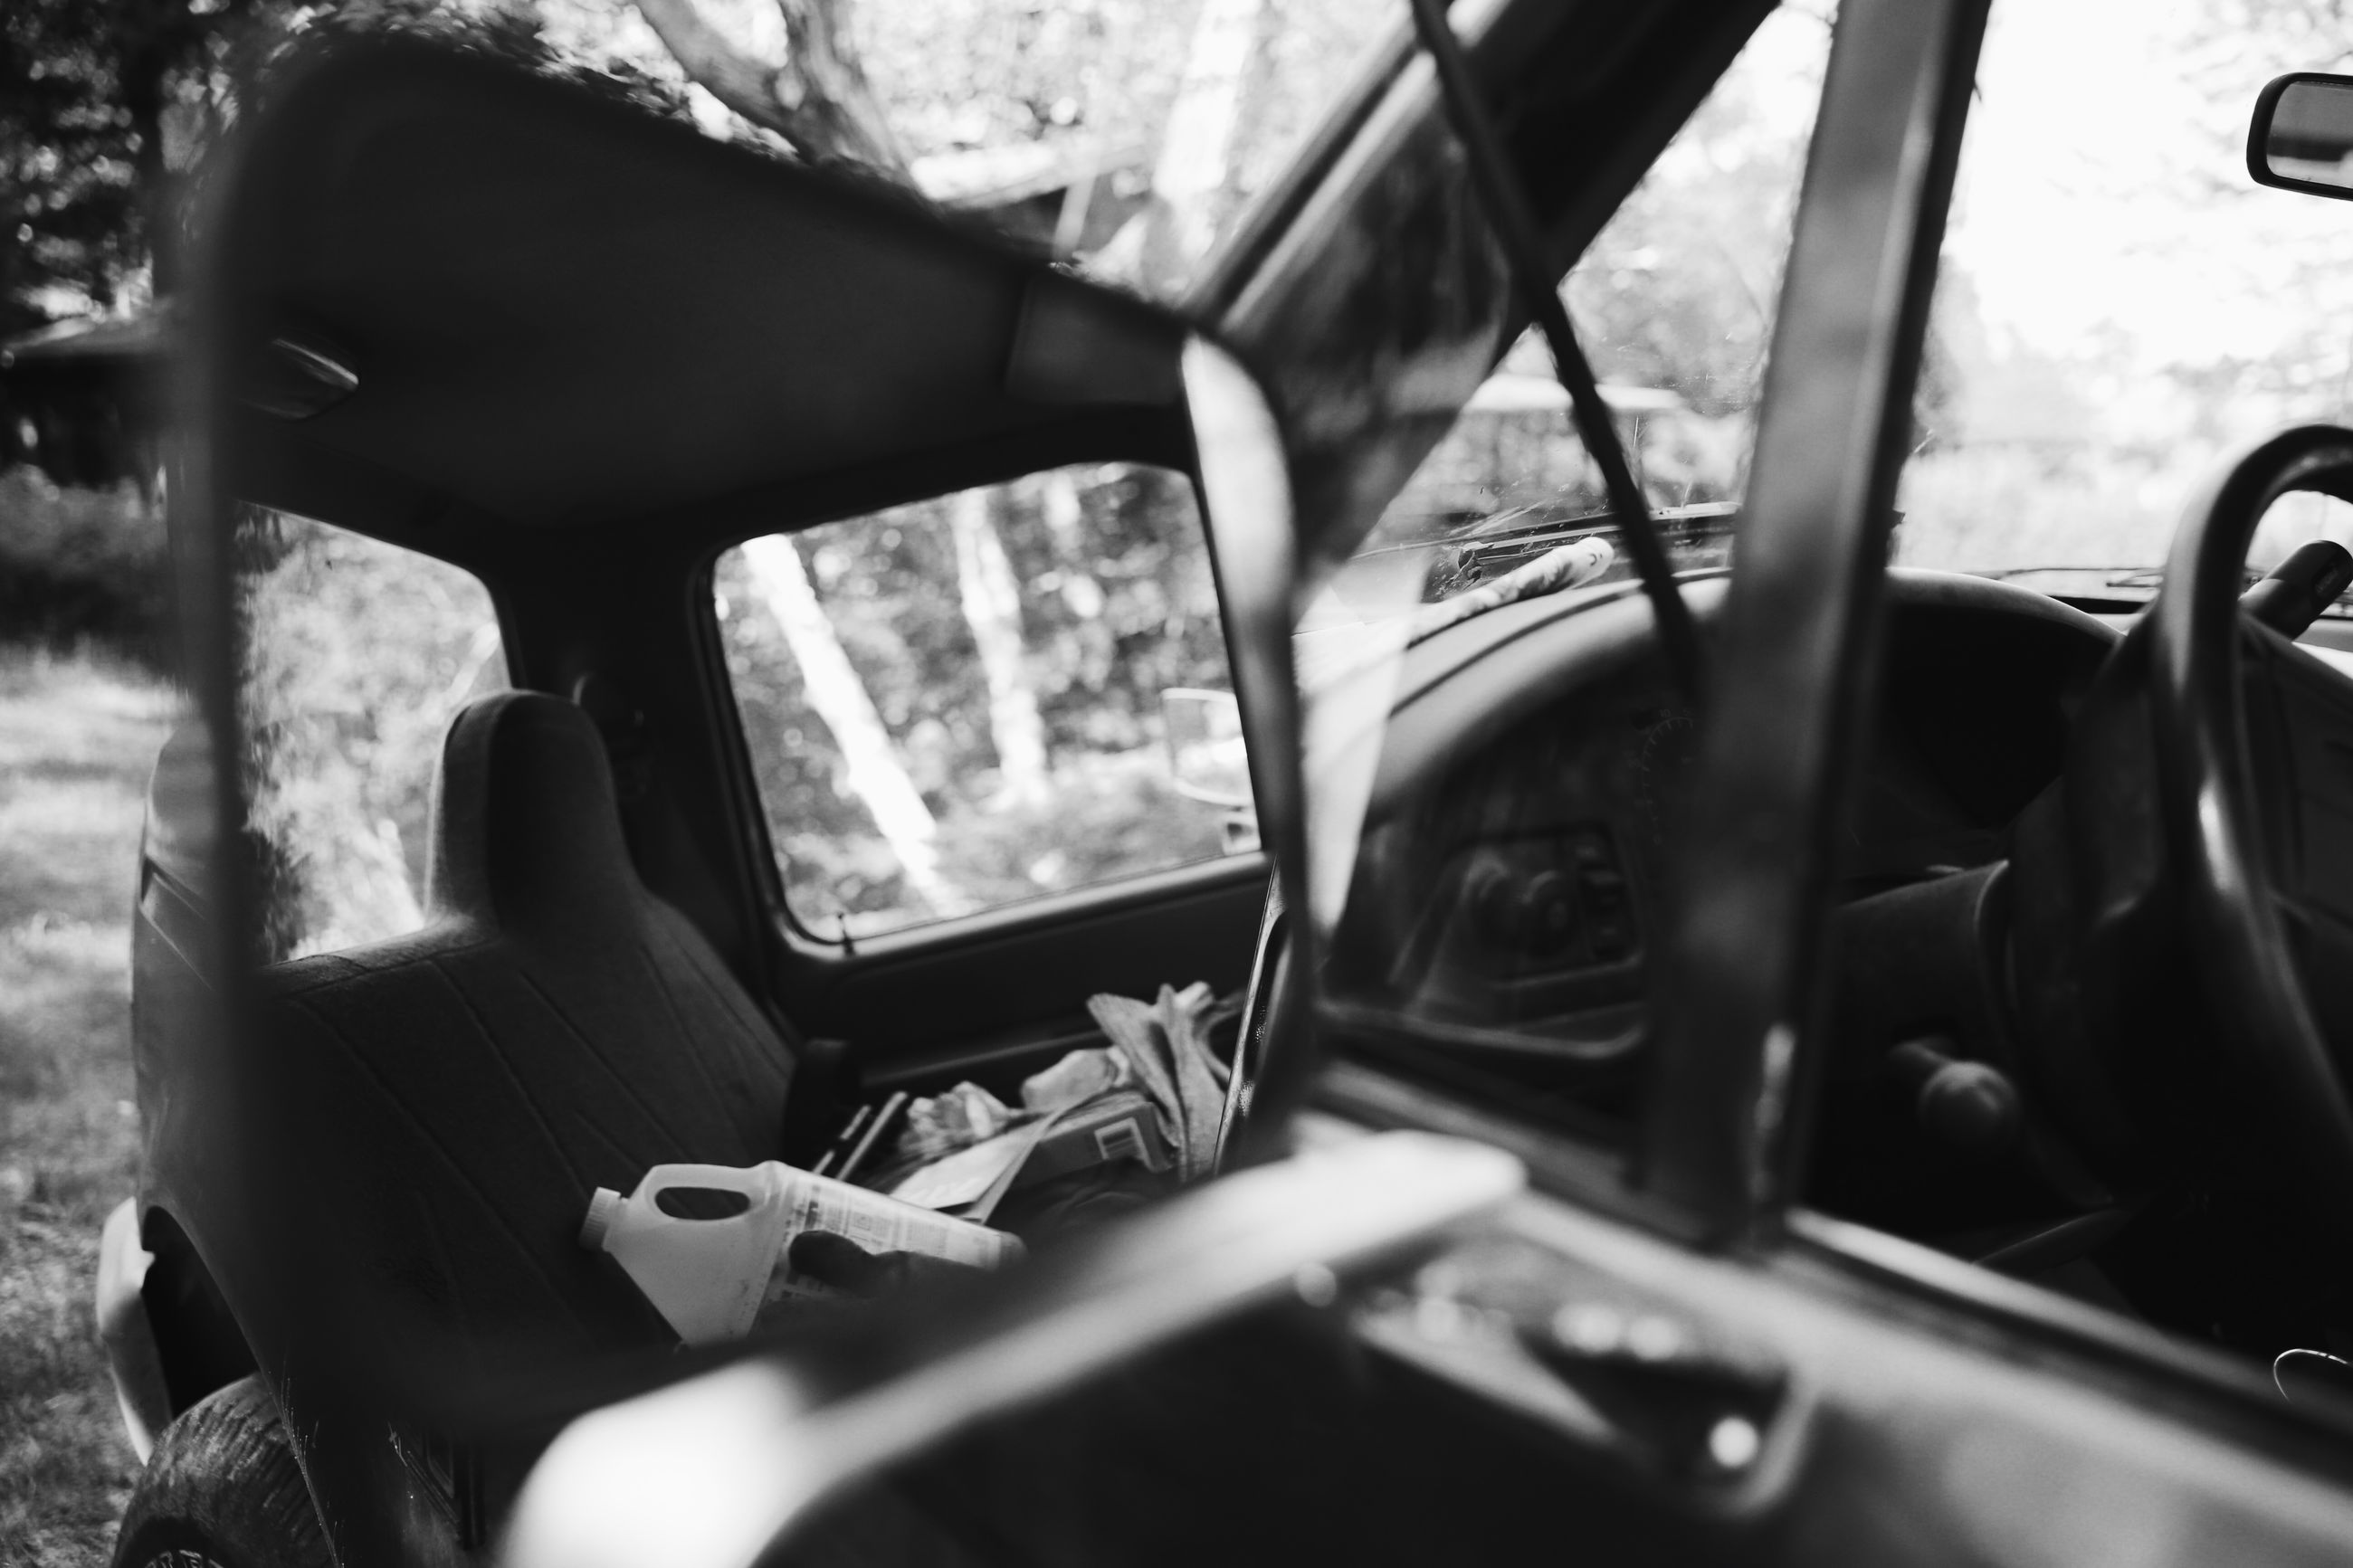 lifestyles, leisure activity, sitting, transportation, mode of transport, men, young adult, vehicle interior, land vehicle, car, photographing, photography themes, holding, person, travel, casual clothing